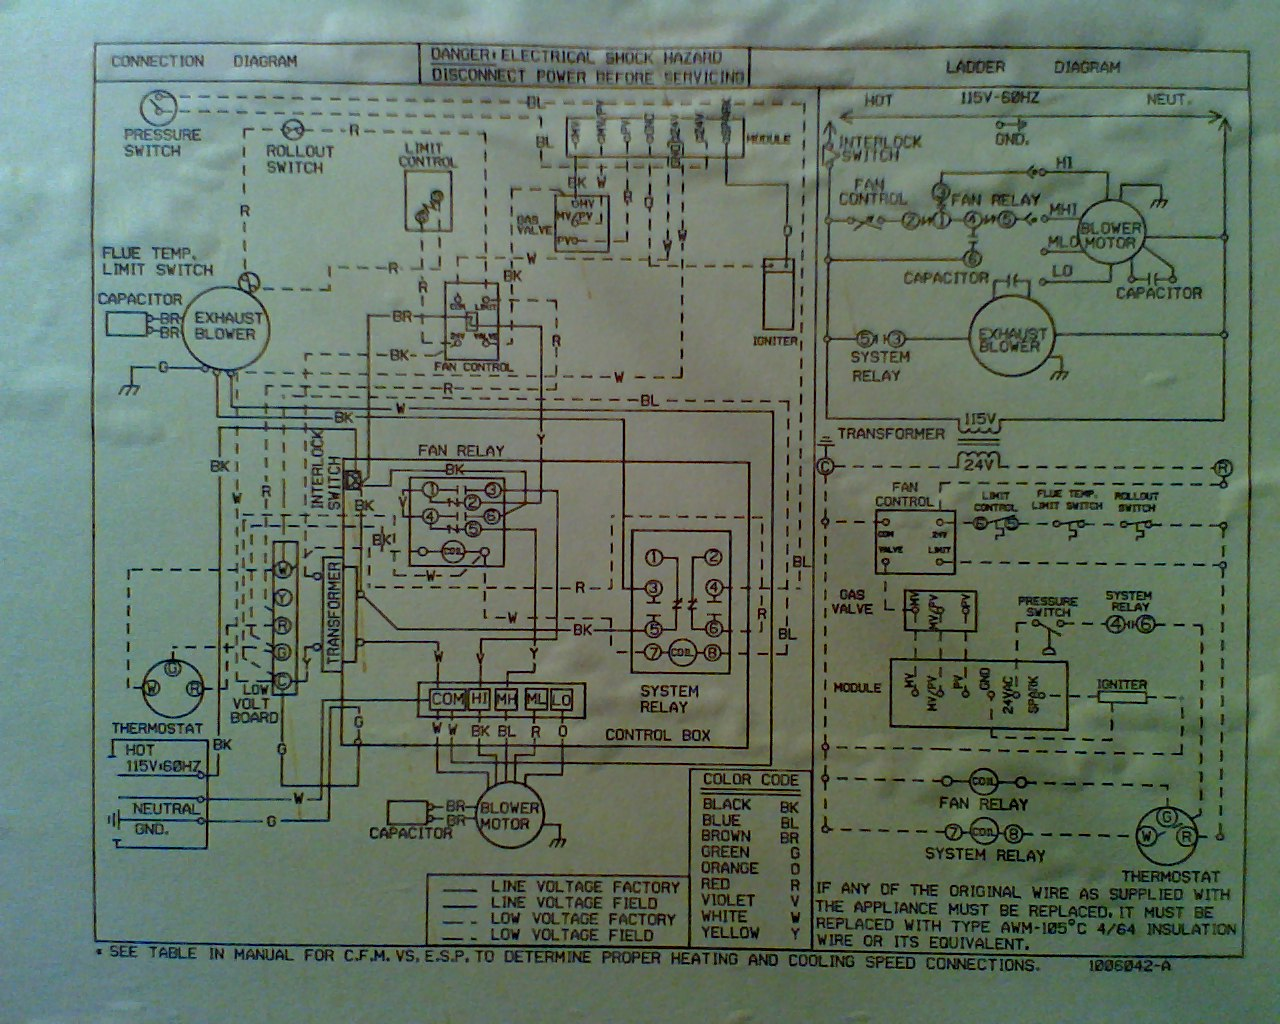 2009 11 20_231603_1120091711a air conditioner y wire grihon com ac, coolers & devices tempstar 2200 air conditioner wiring diagram at webbmarketing.co